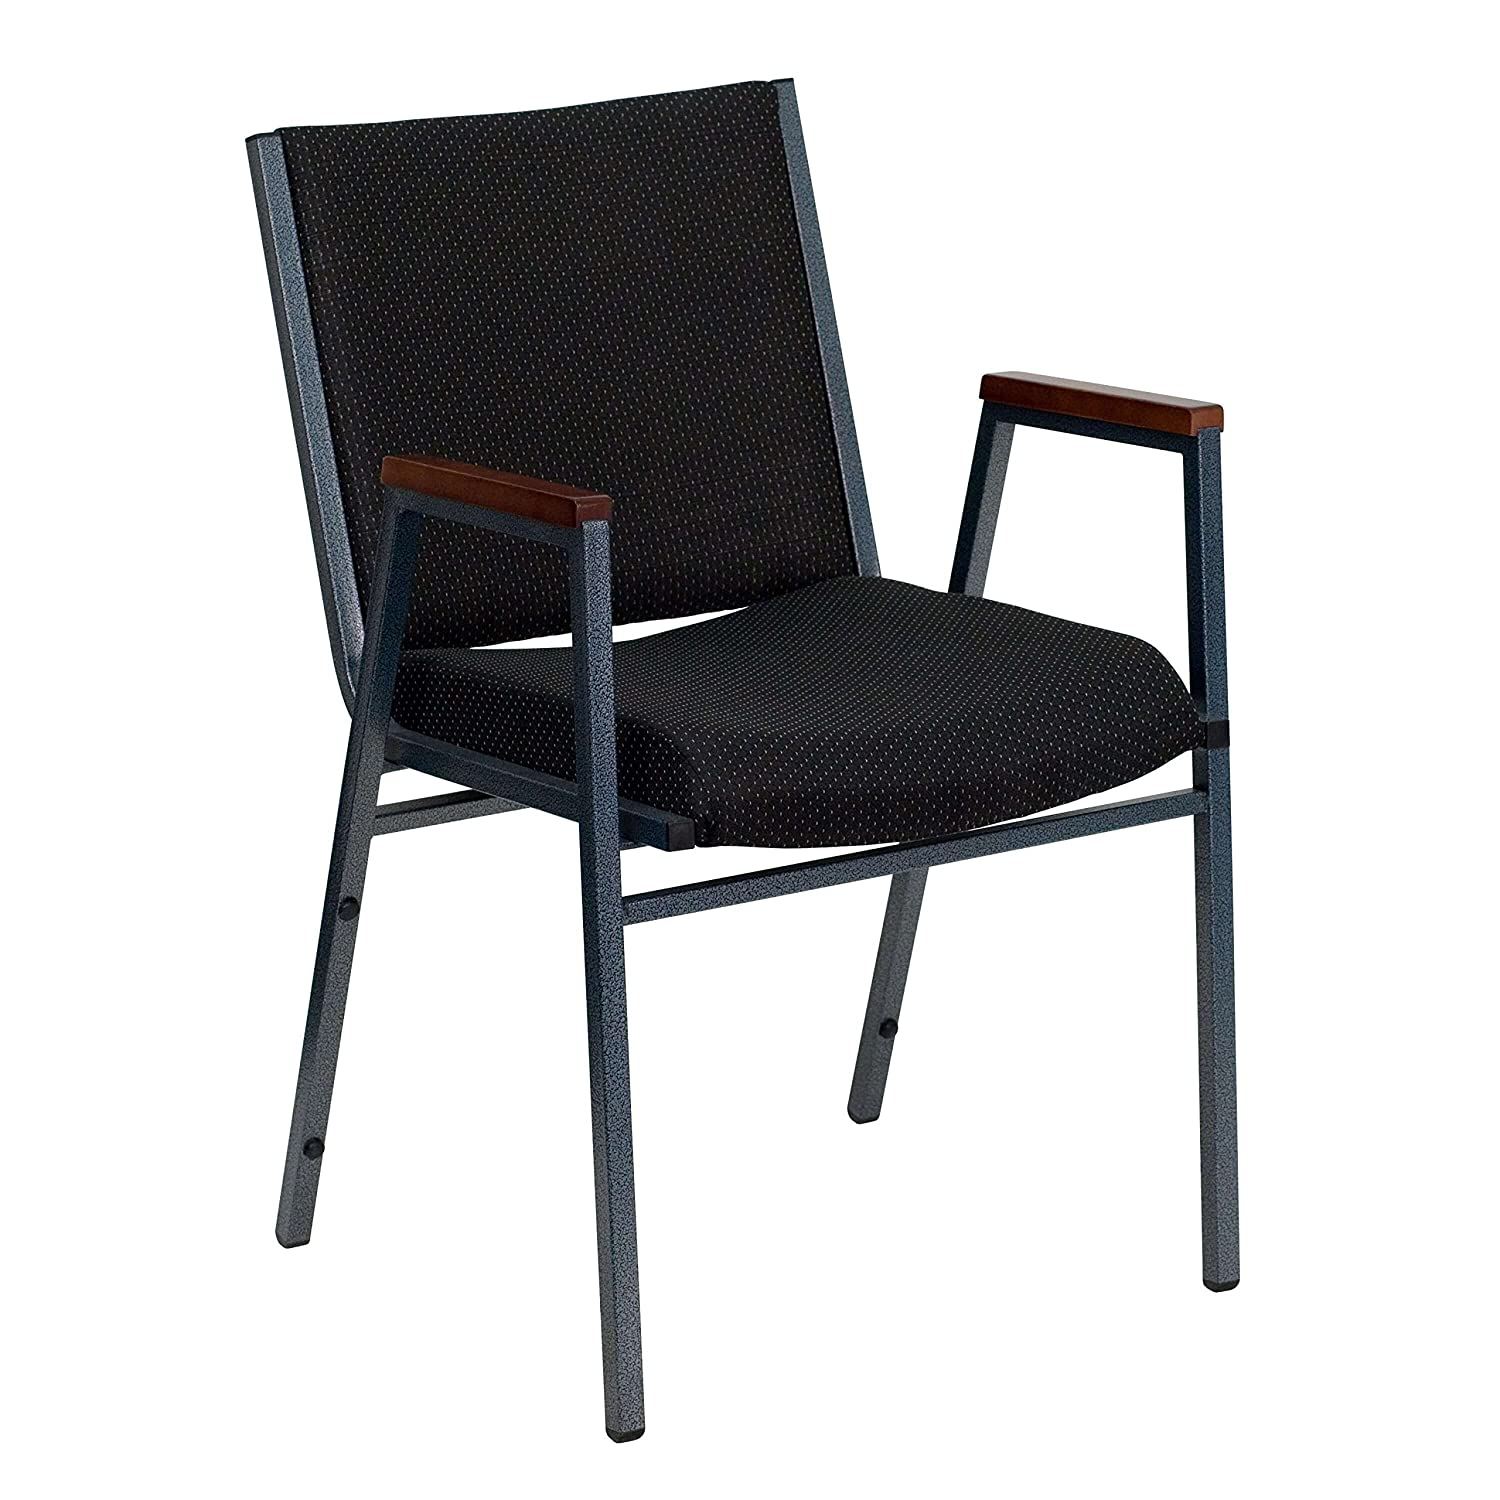 Amazon.com  Office Waiting Room Chairs - Douglas Stackable Office Chairs  Office Products  sc 1 st  Amazon.com & Amazon.com : Office Waiting Room Chairs - Douglas Stackable Office ...